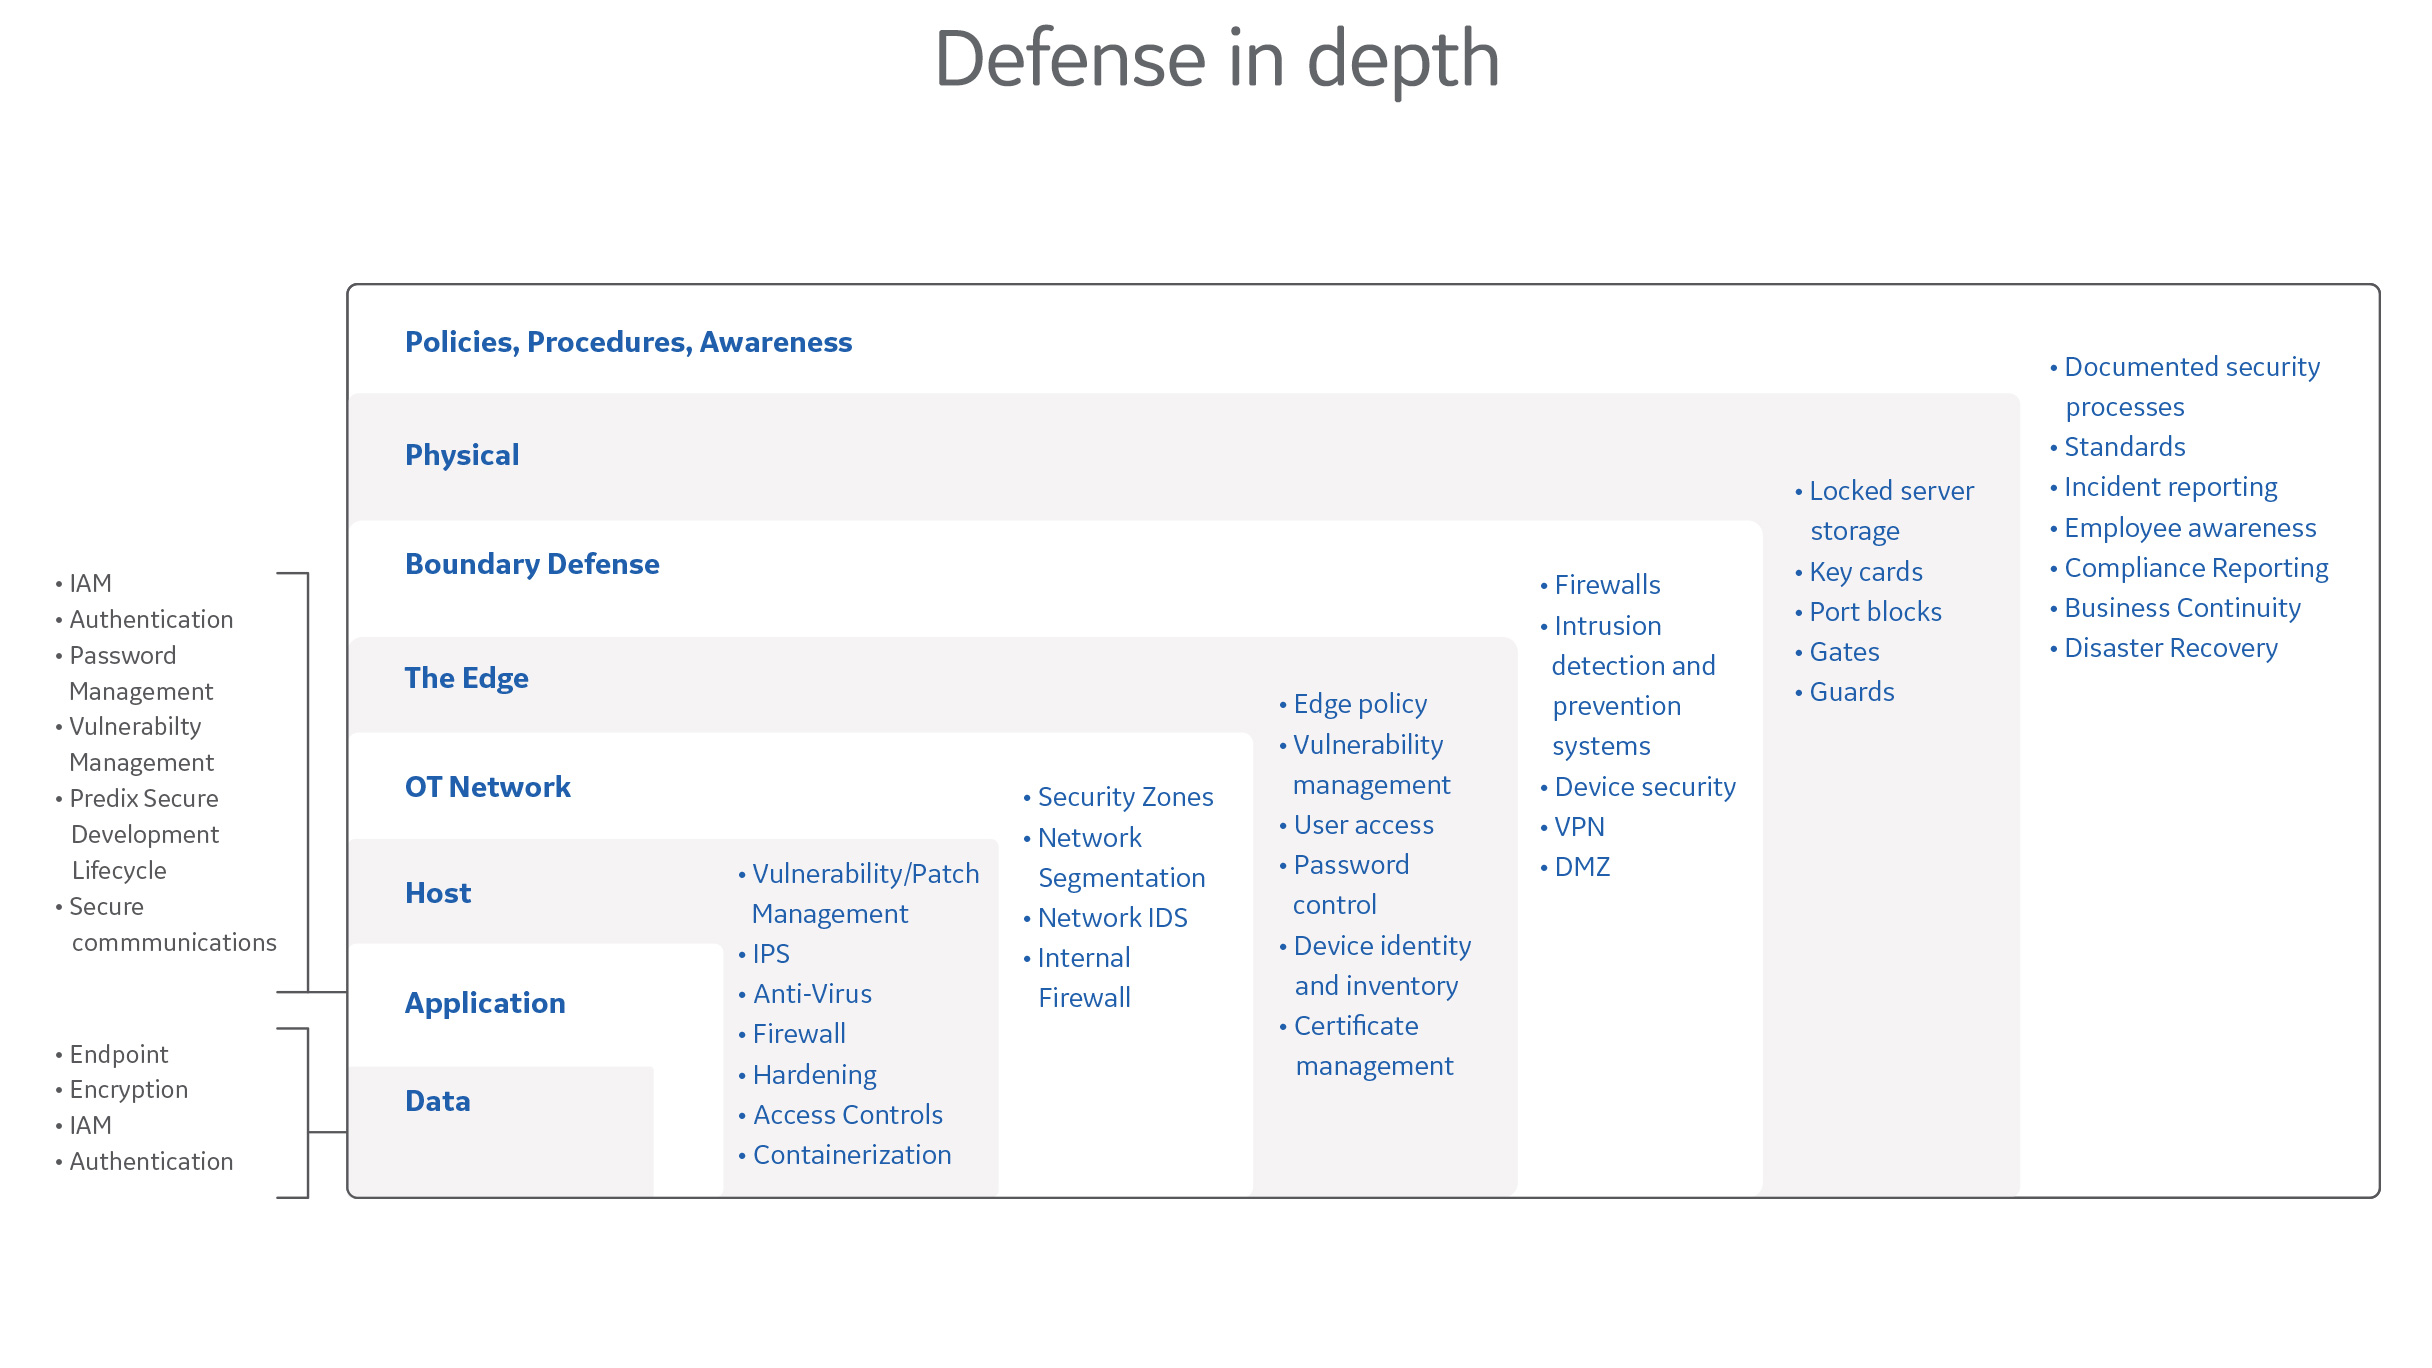 module-security-chart-defense-in-depth-2432x1368.jpg